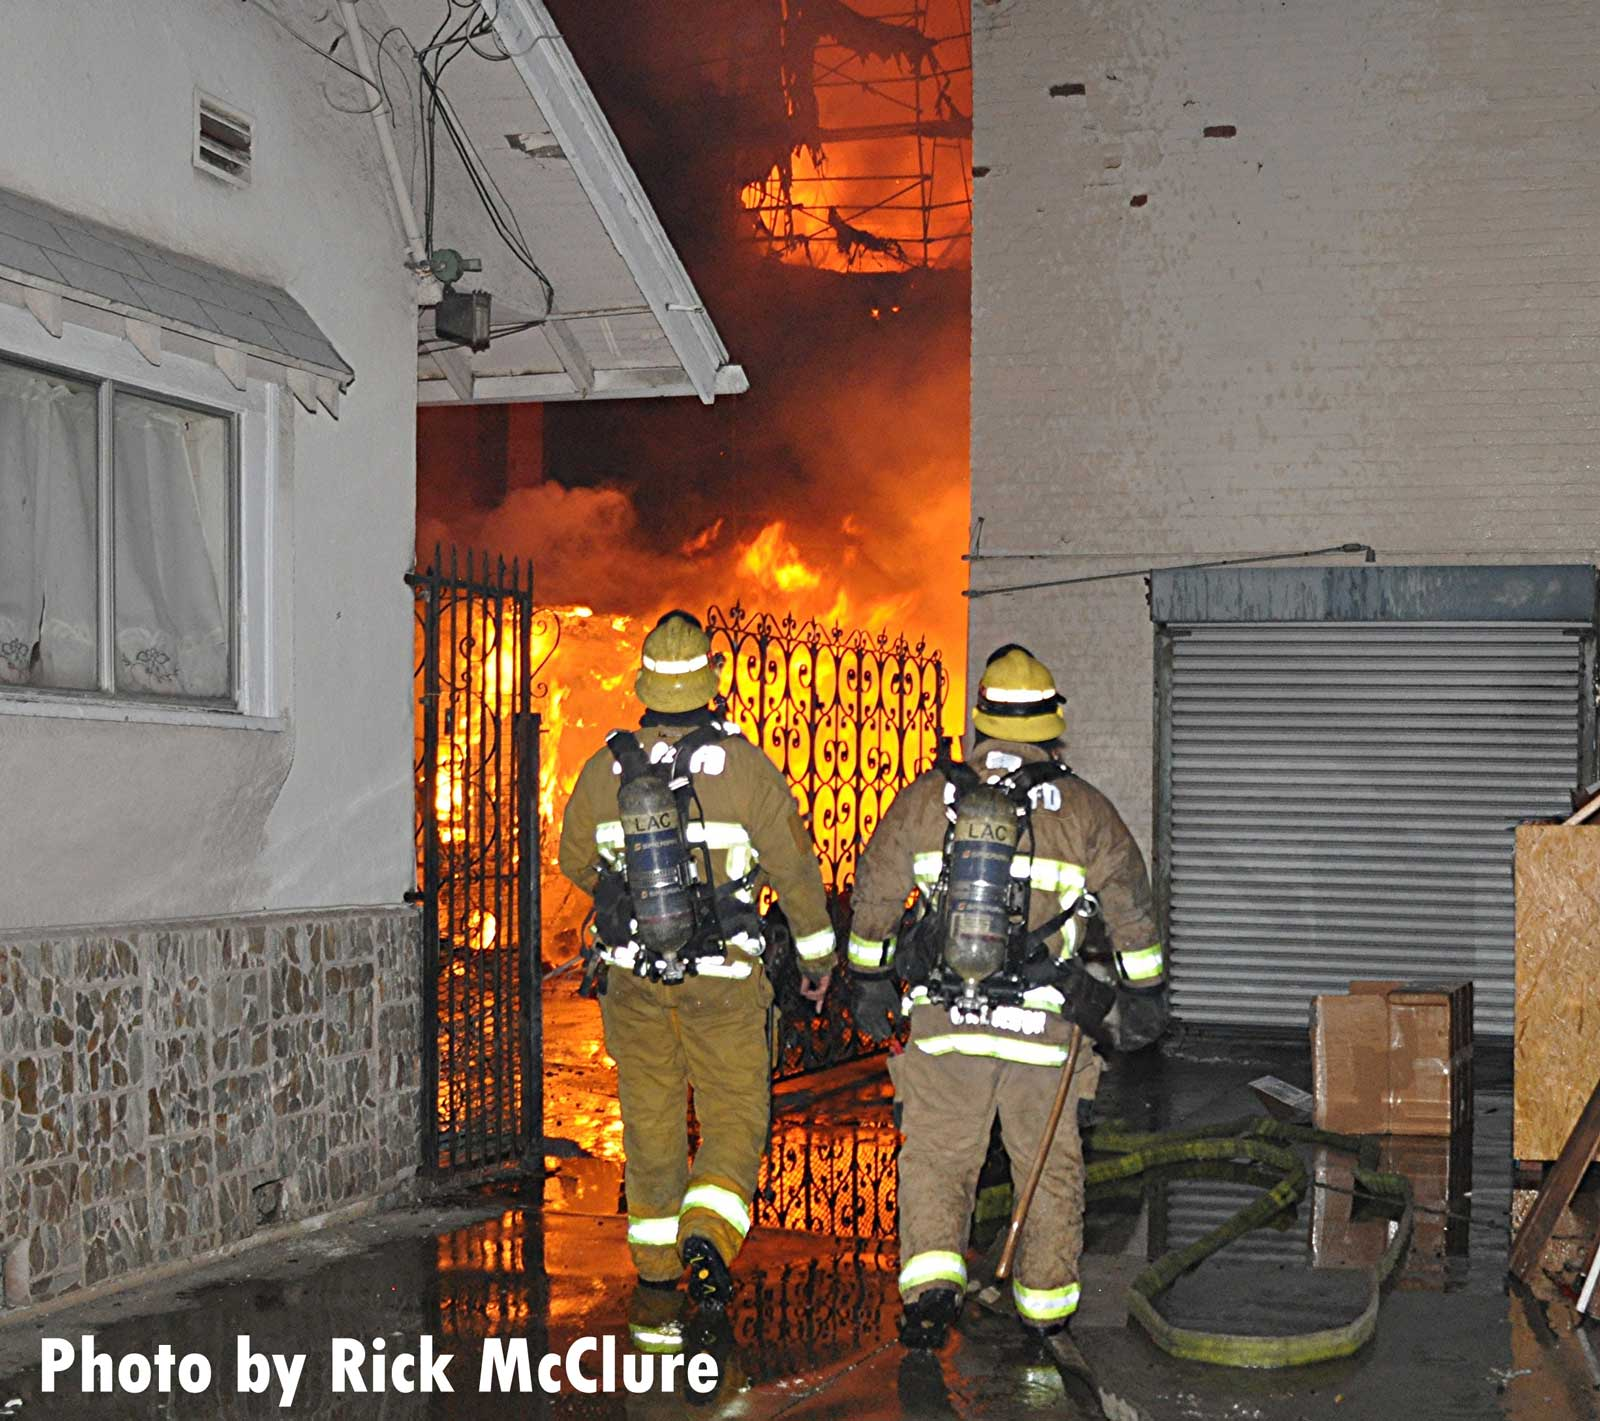 Firefighters see flames raging between the walls